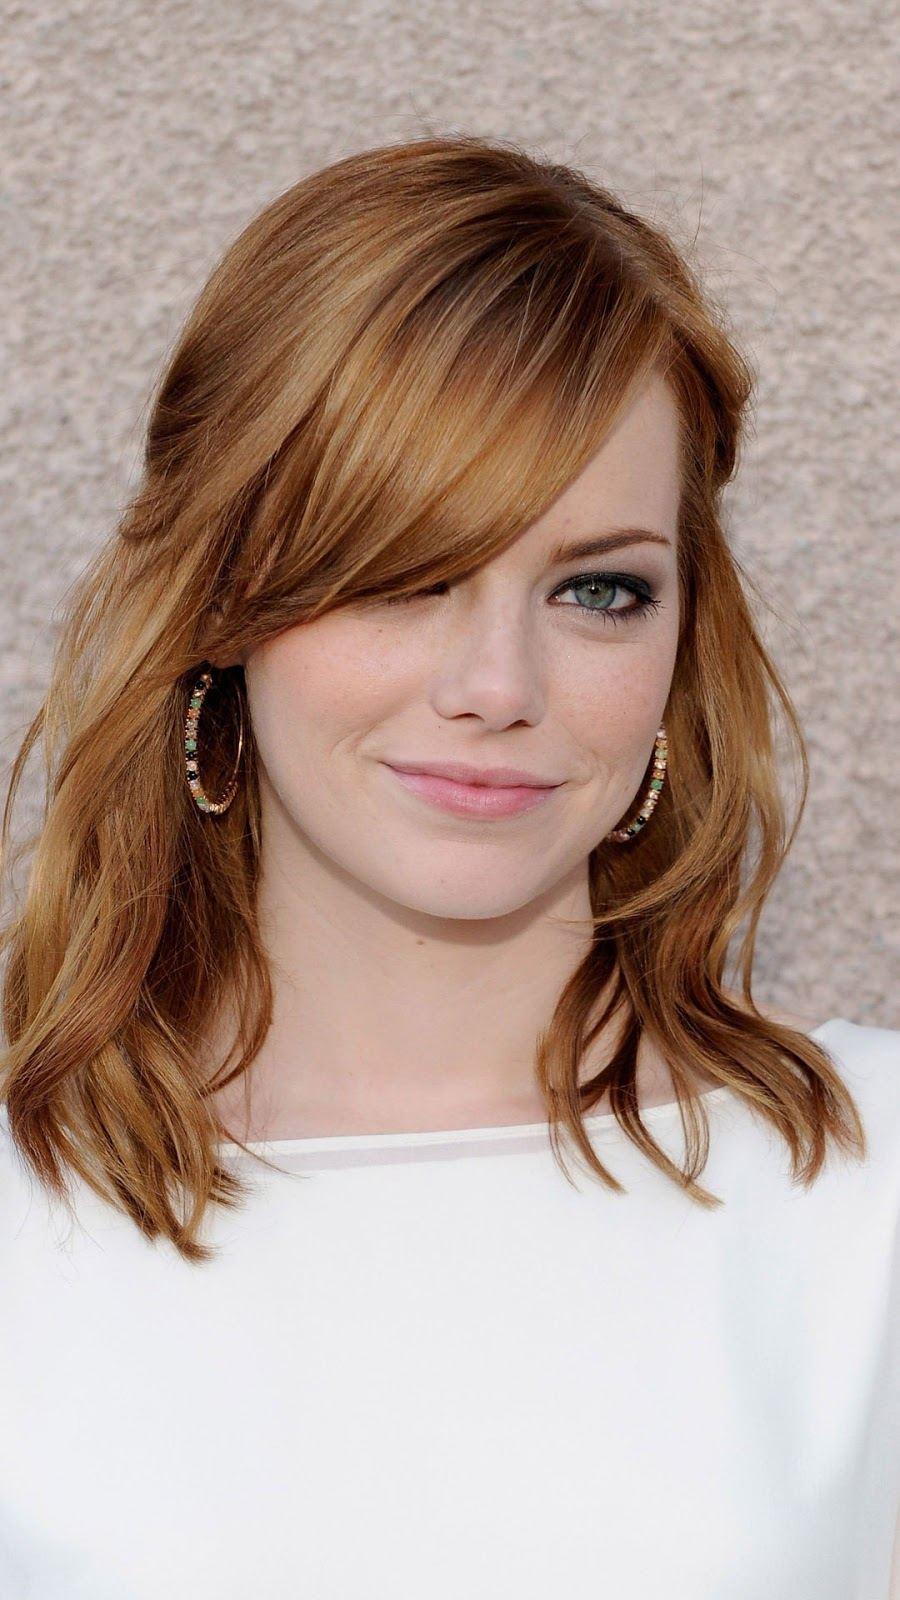 Emma Stone Latest Photo Gallery